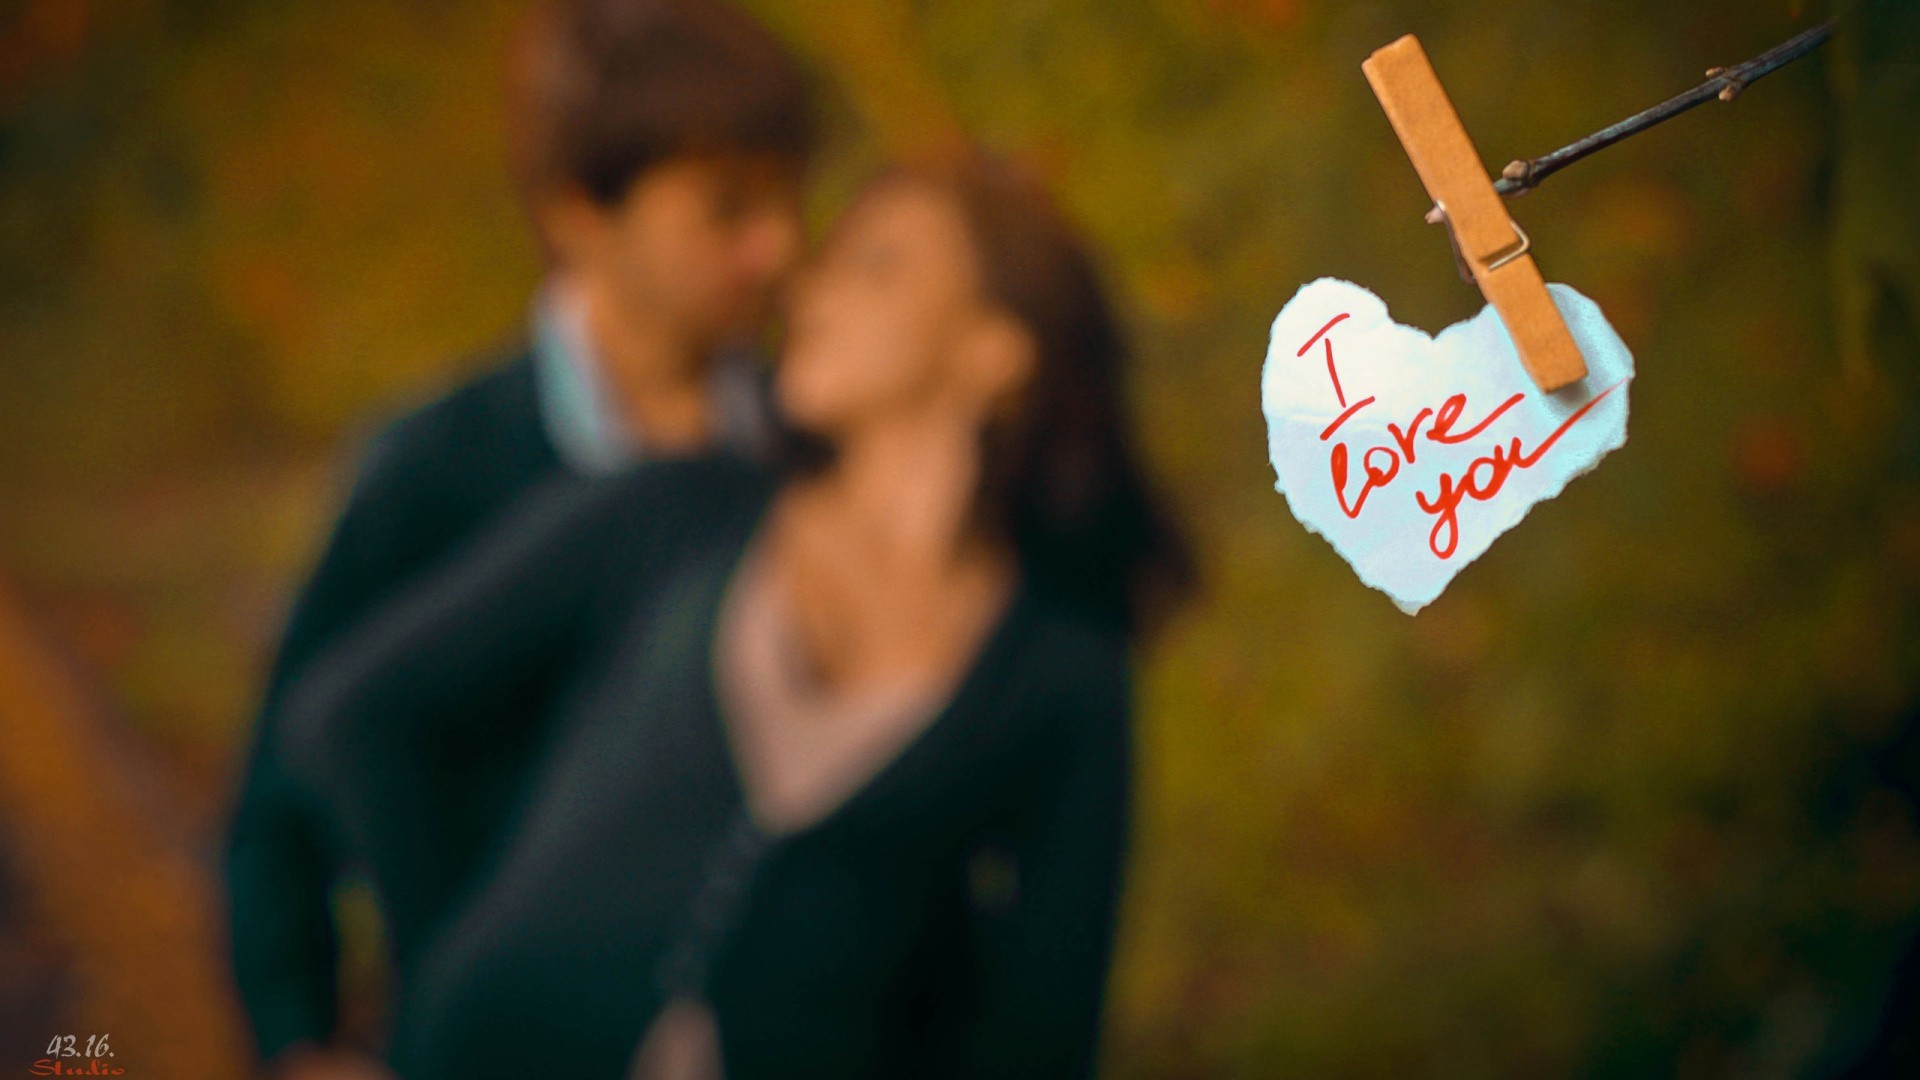 Love You Wallpaper For Girlfriend : Love couple, HD Love, 4k Wallpapers, Images, Backgrounds ...